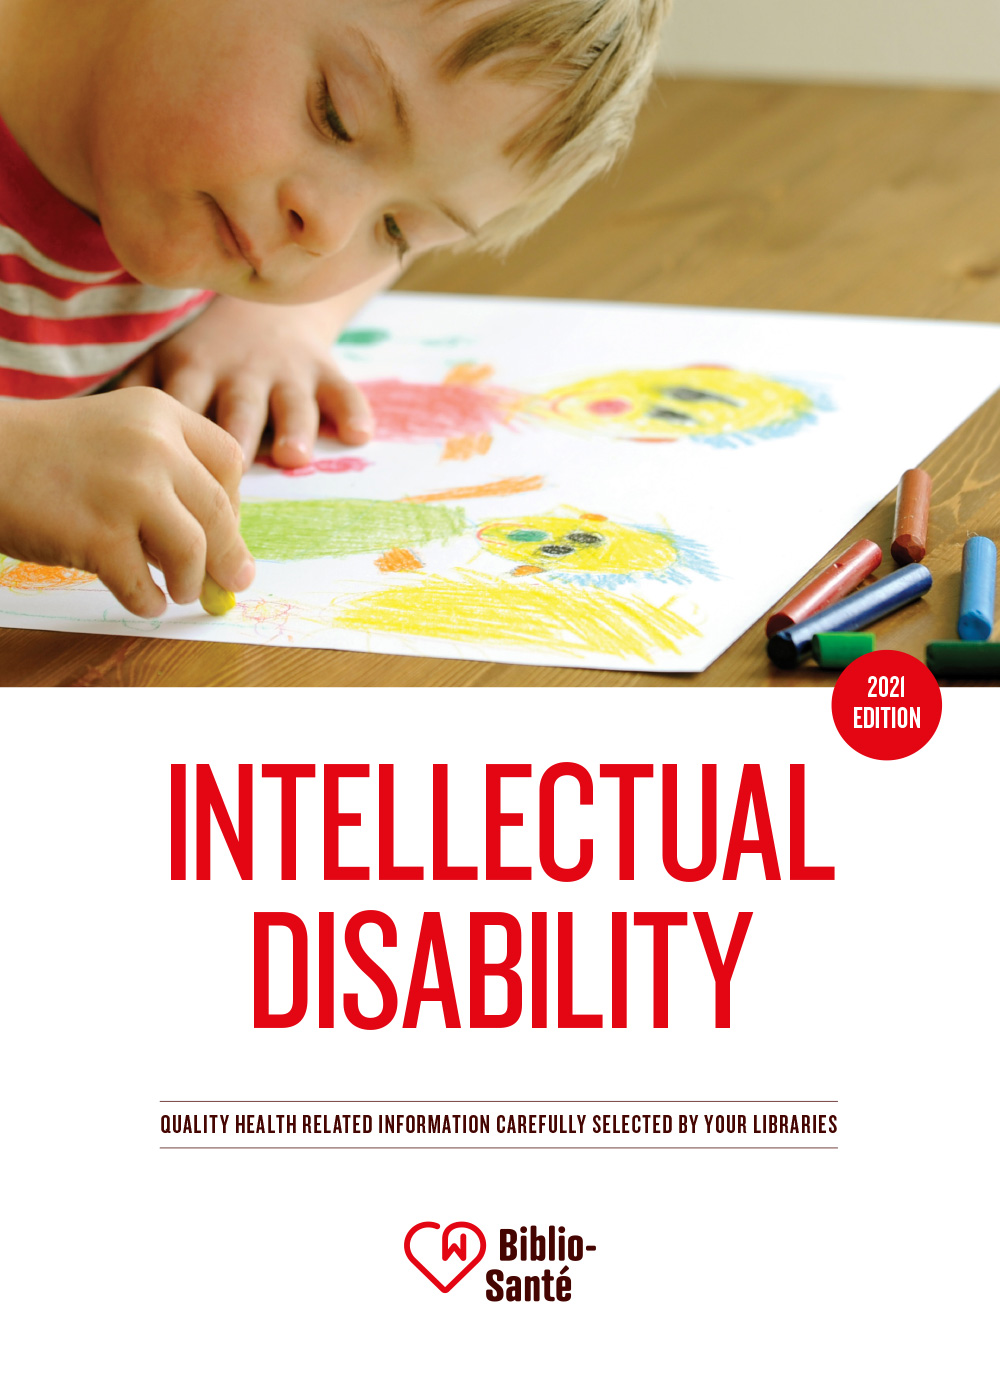 Intellectual disability booklet